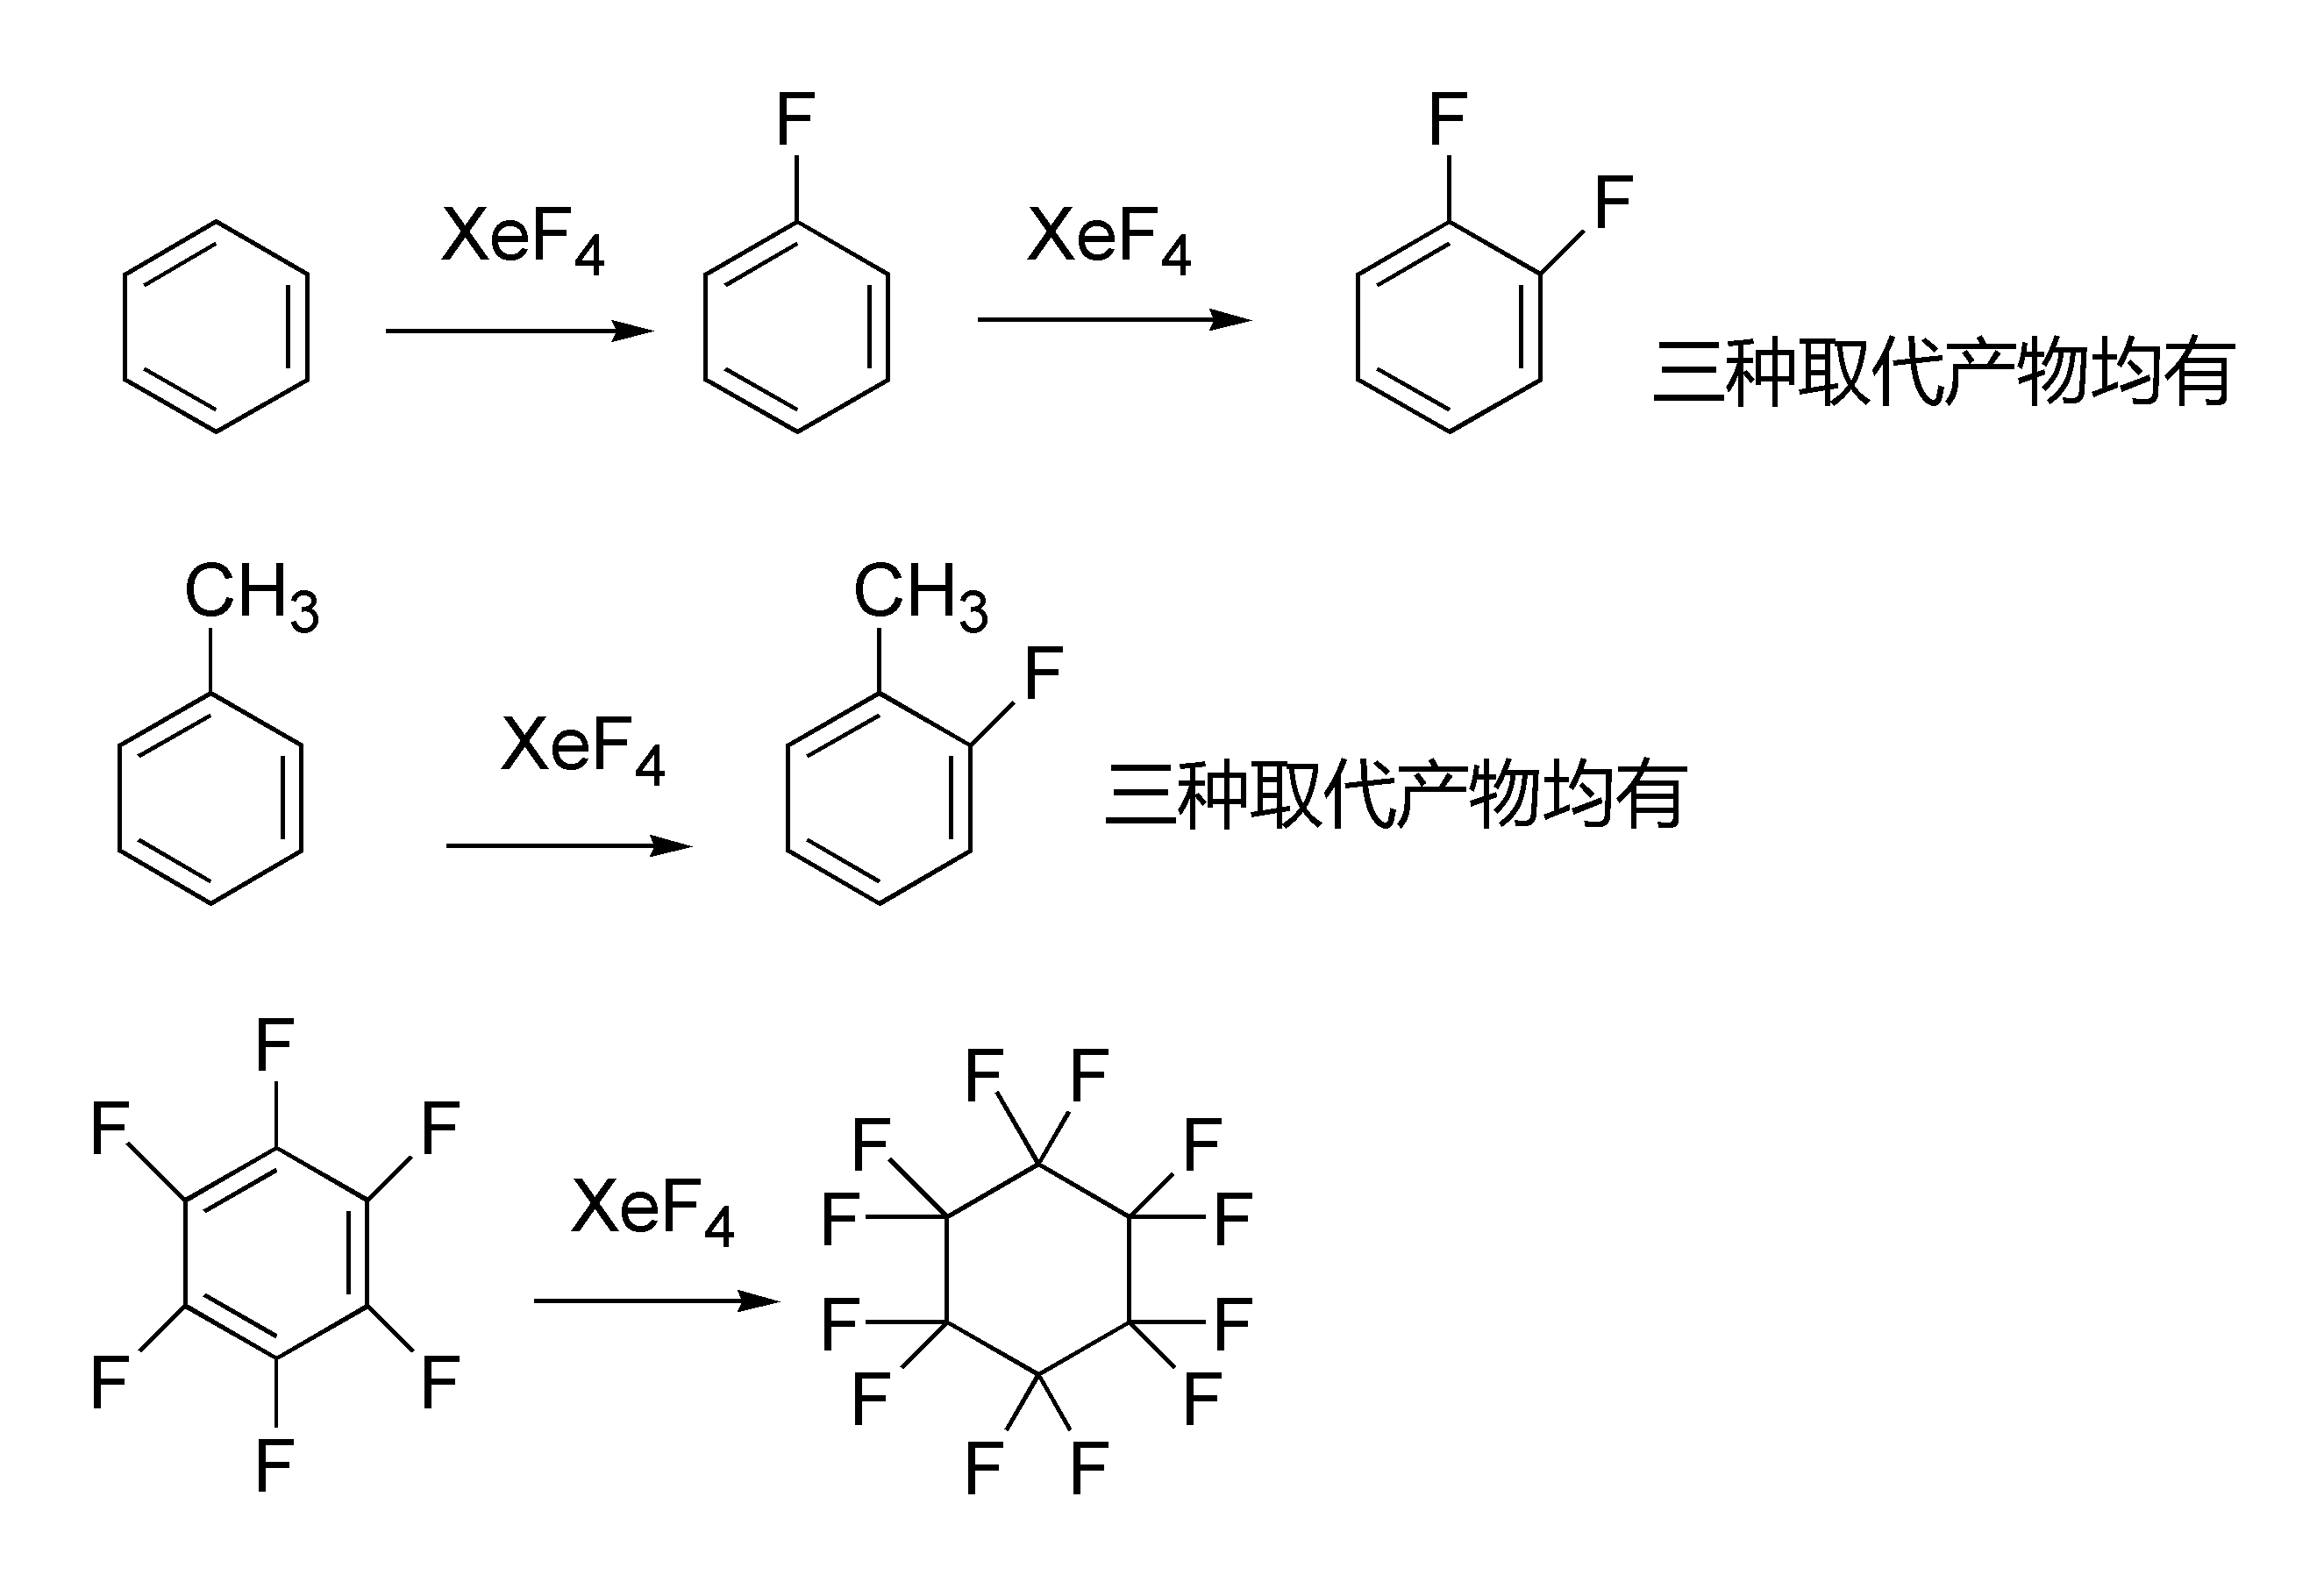 File:XeF4-organic-reactions.png - Wikimedia Commons